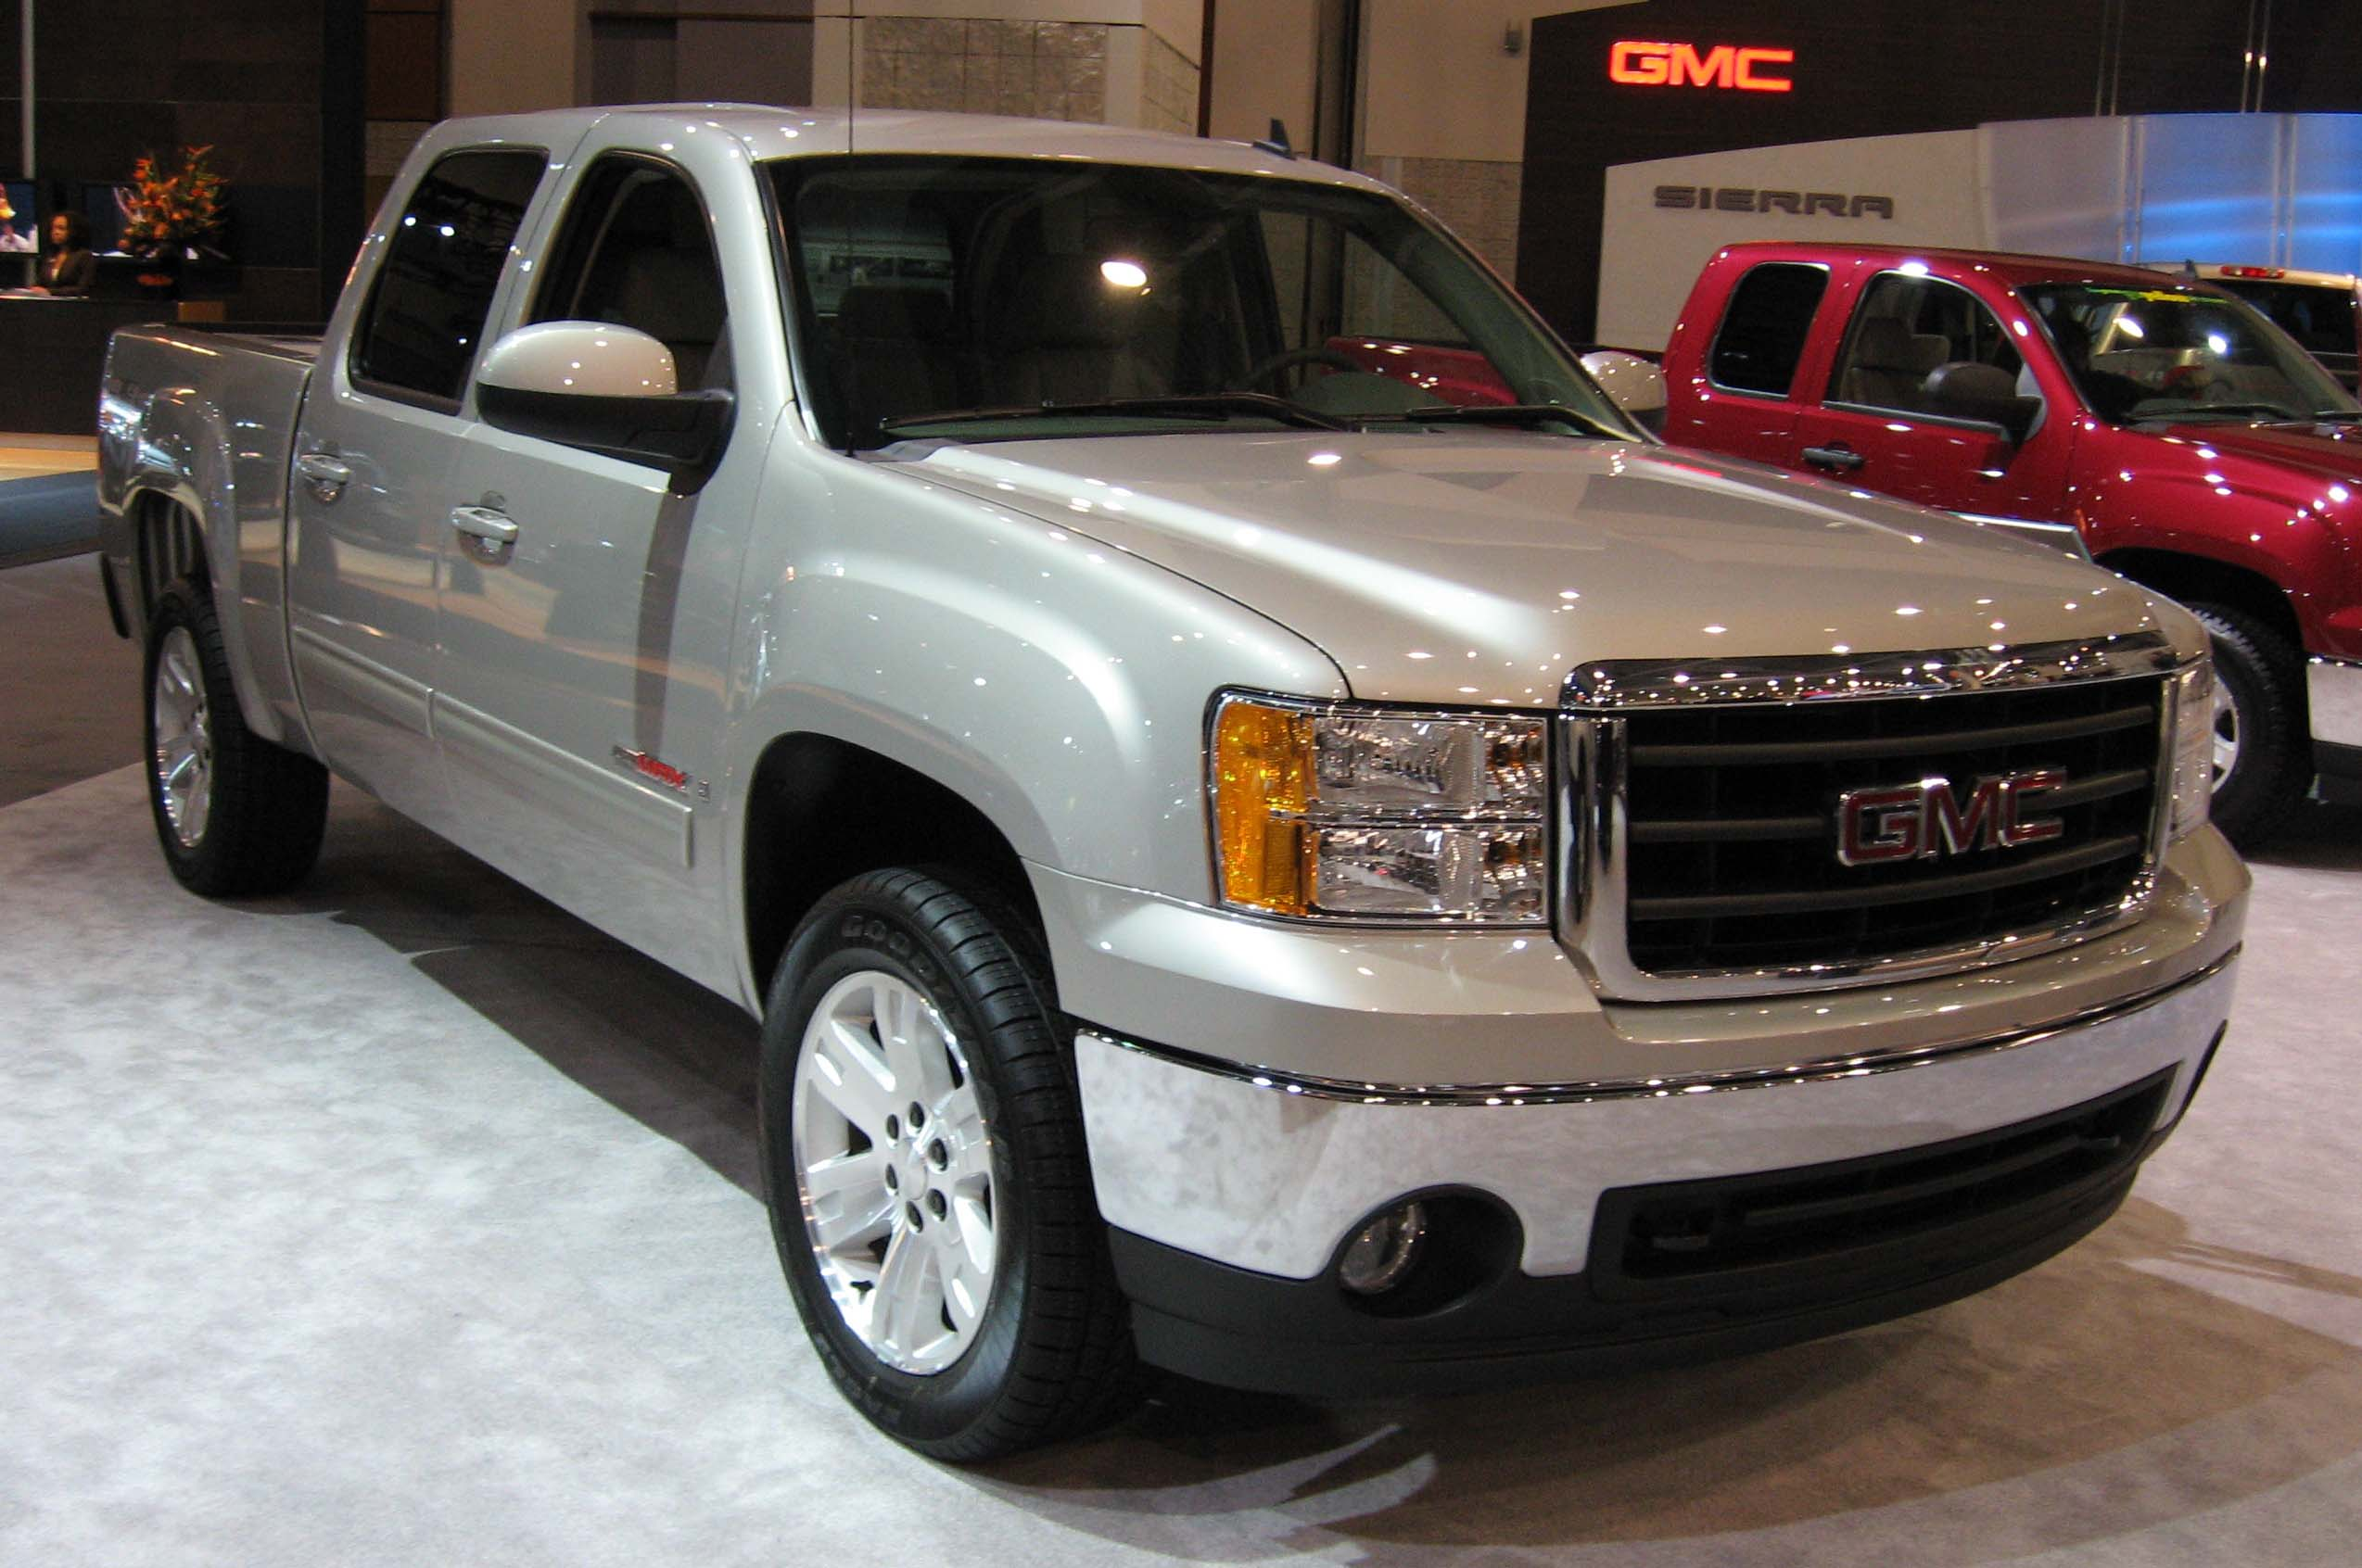 GMC Sierra photo 11